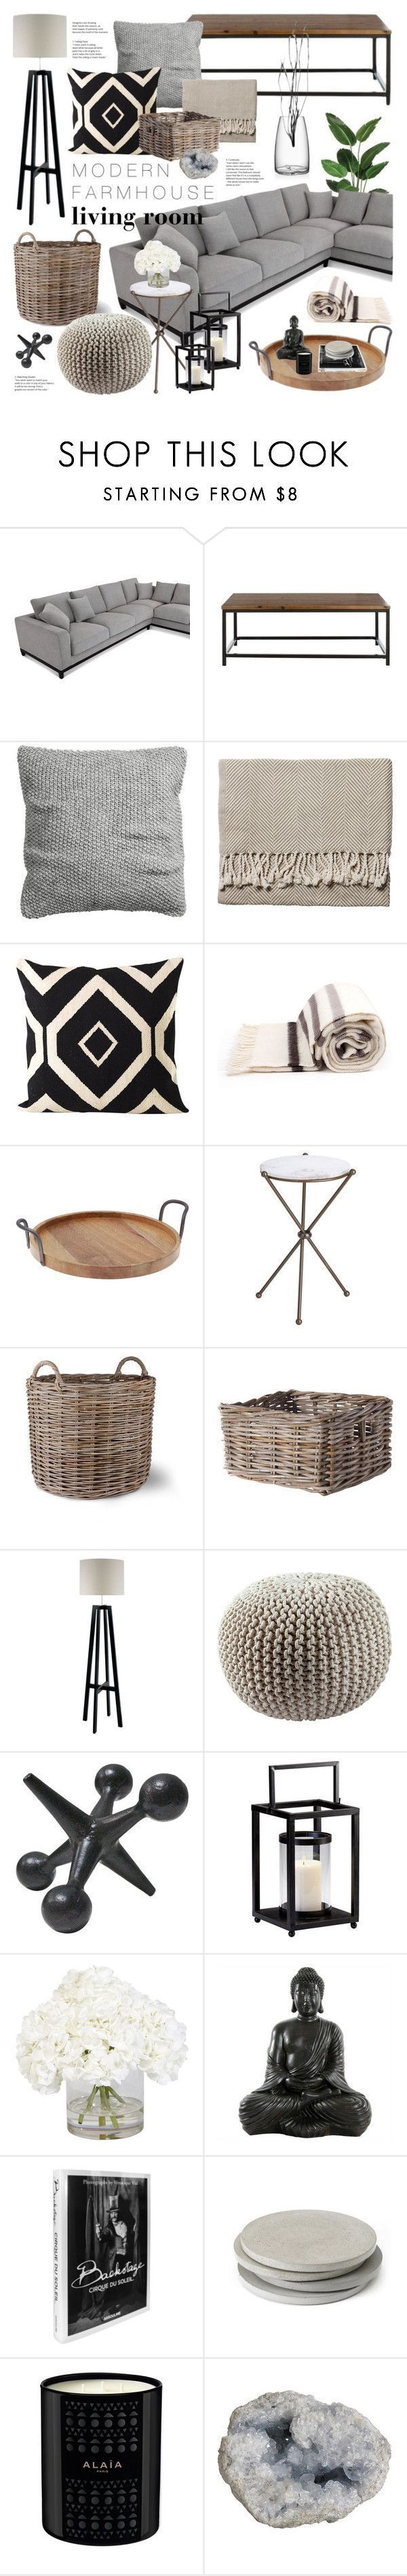 """Modern Farmhouse Living Room"" by emmy ❤️ liked on Polyvore featuring interior, interiors, interior design, home, home decor, interior decorating, H&M, Serena & Lily, Hudson's Bay Company and Thirstystone"